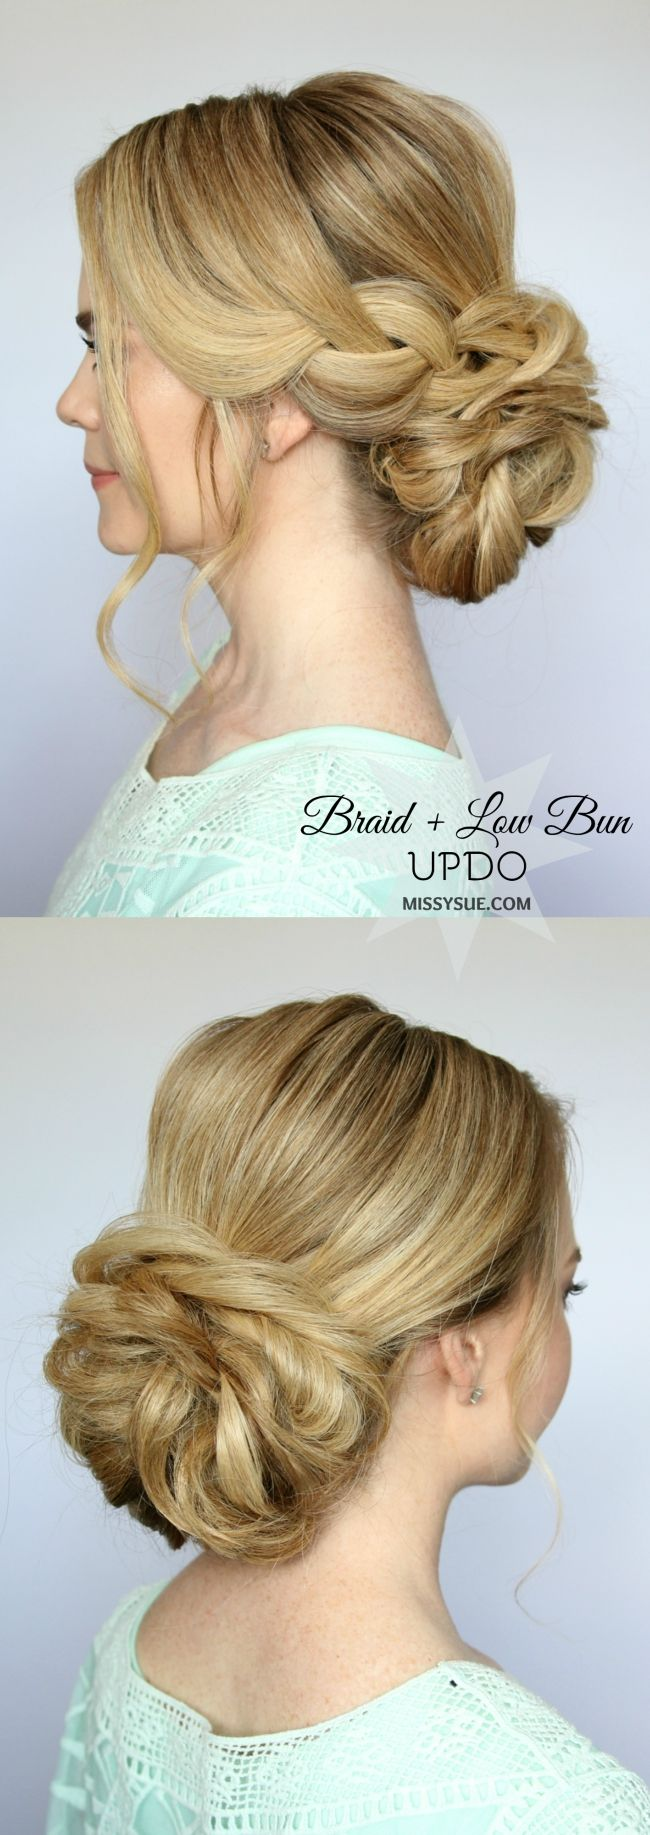 Braid and Low Bun Updo